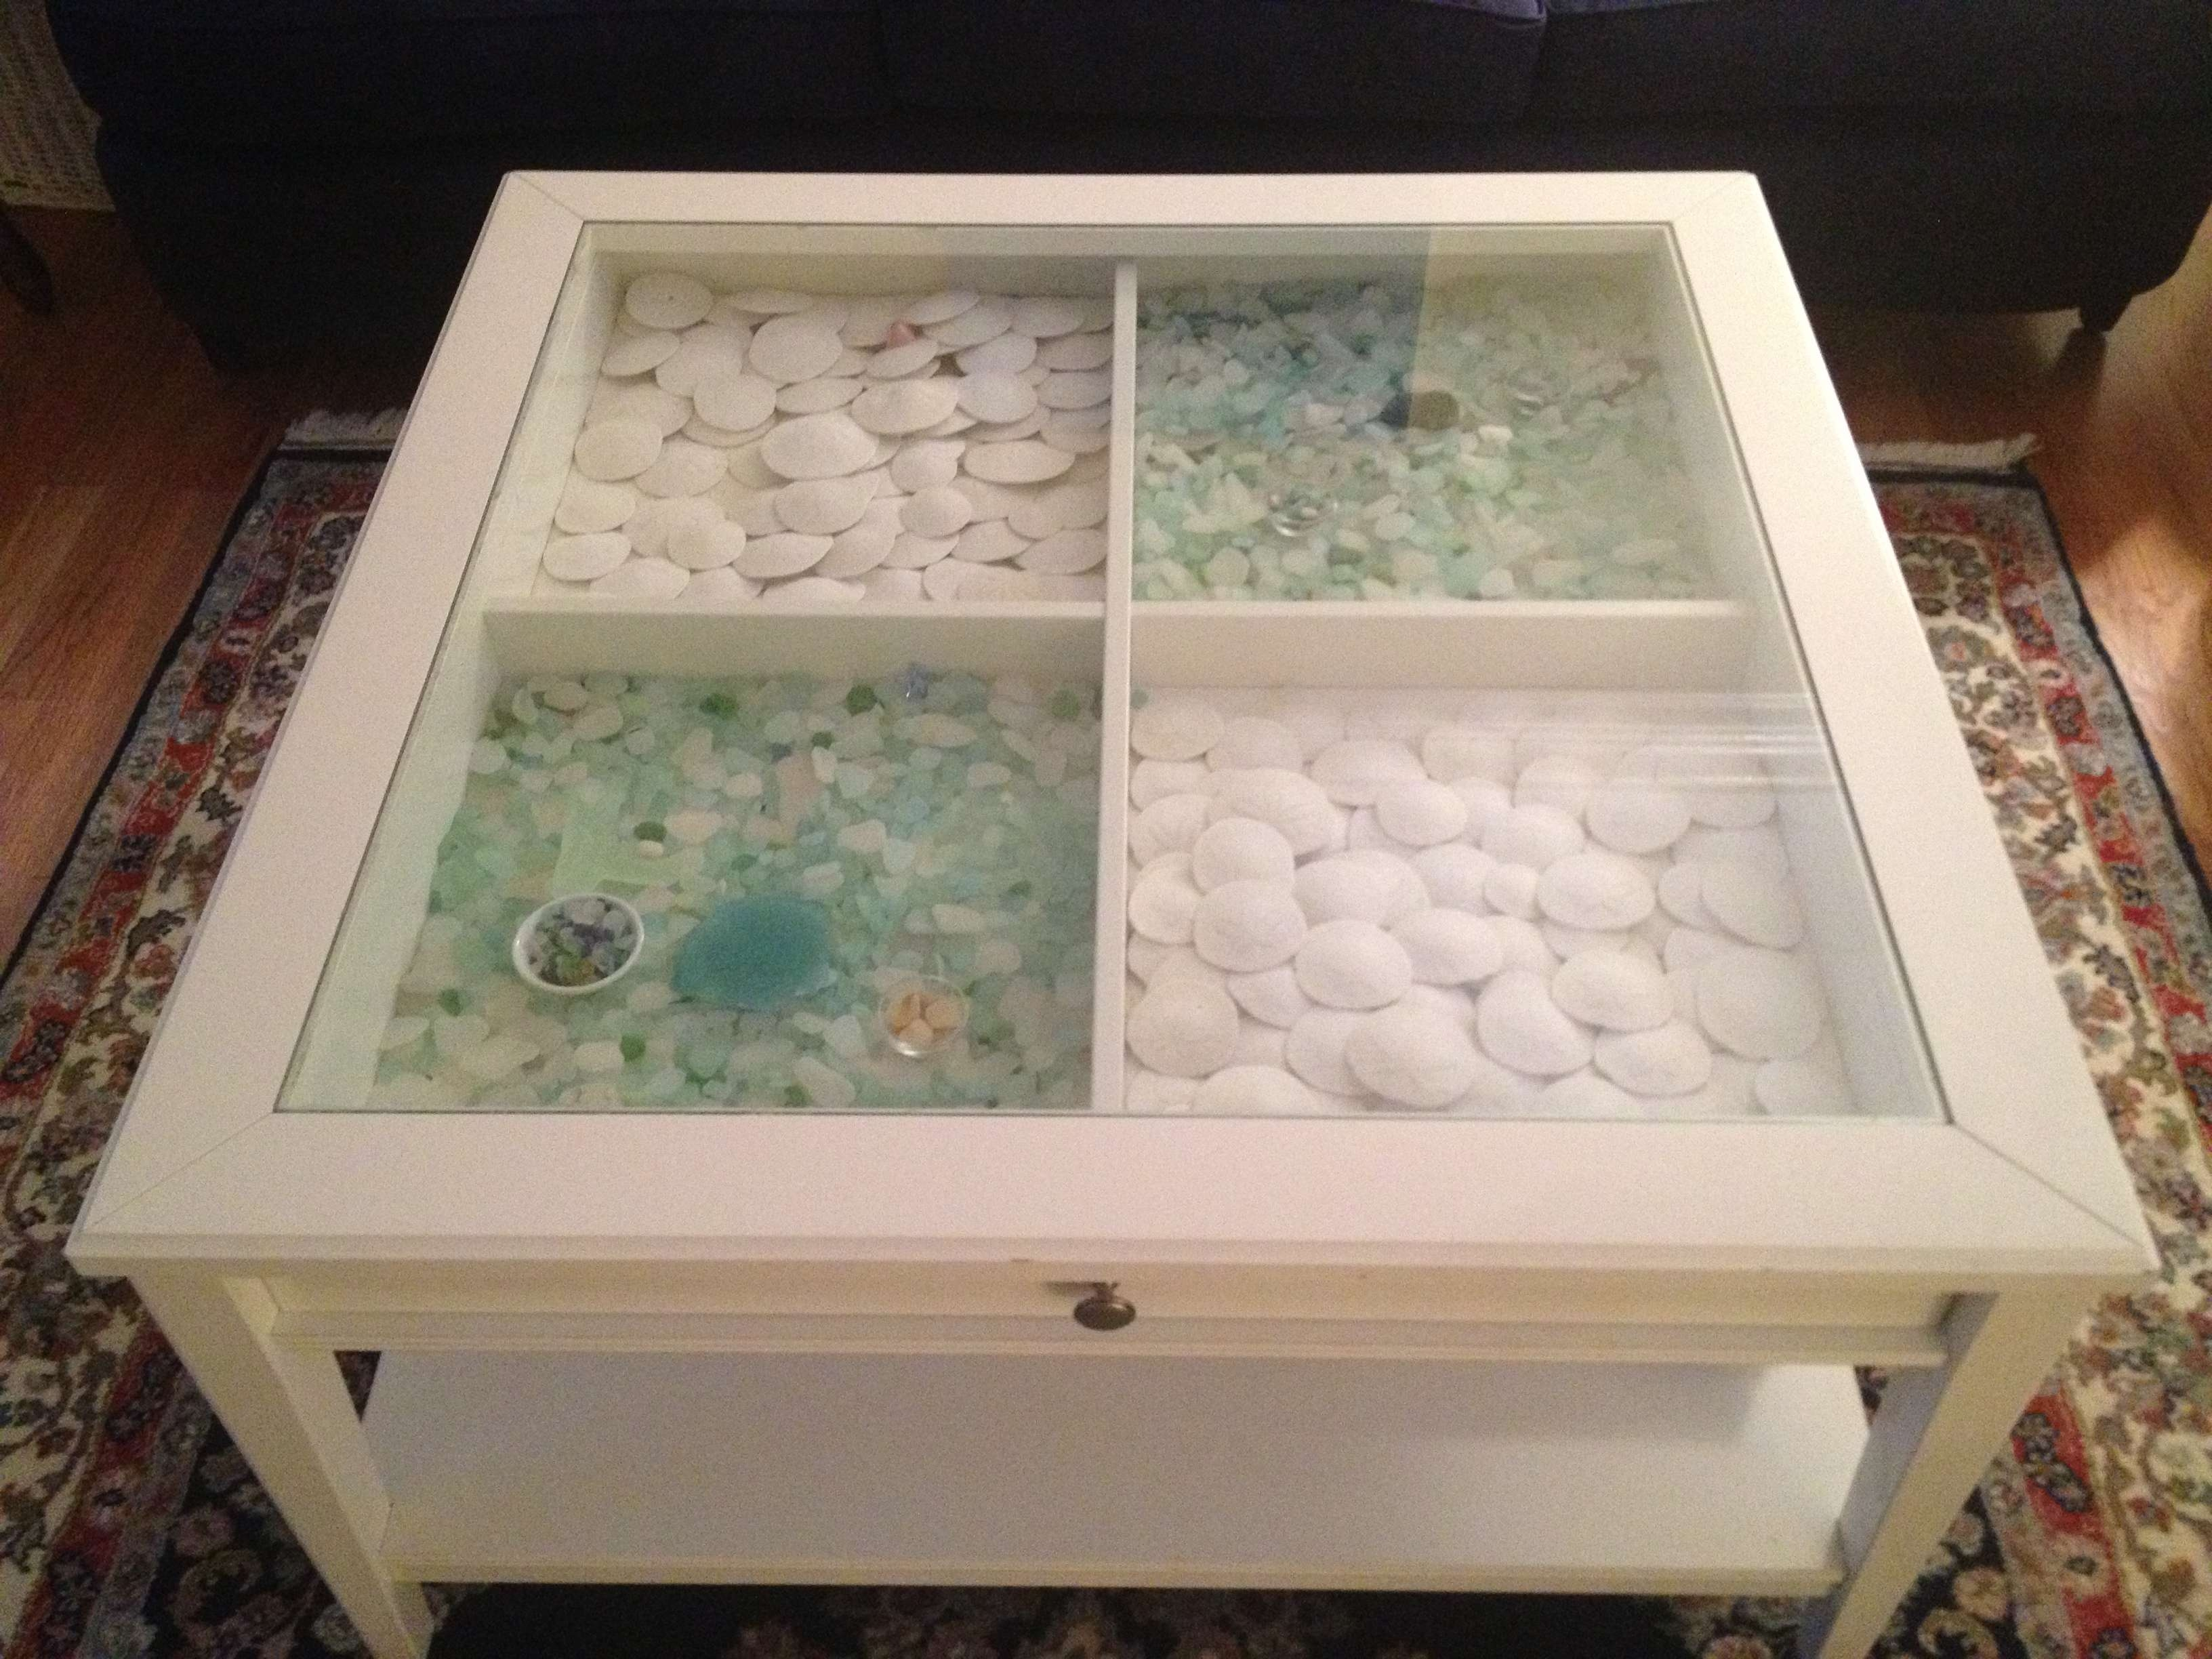 Well Known Coffee Tables With Glass Top Display Drawer Intended For Coffee Table Glass Top Display Drawer (View 19 of 20)